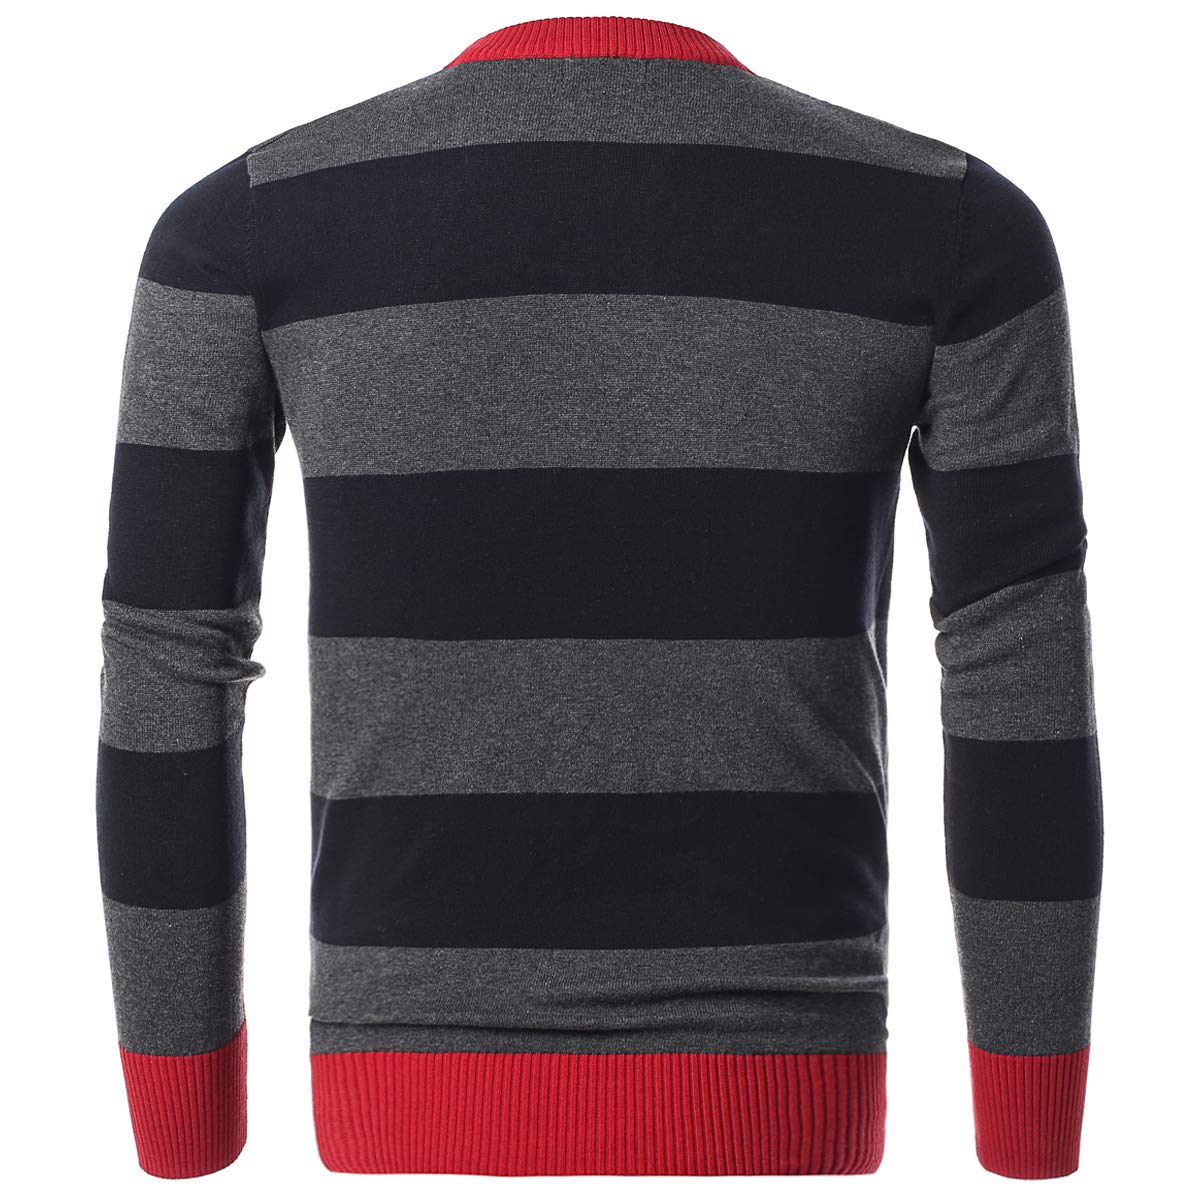 a8bdc9cc3d56cf Amazon.com  Chain Stitch Men s Long Sleeve Striped Pullover Crew Neck  Sweater  Clothing